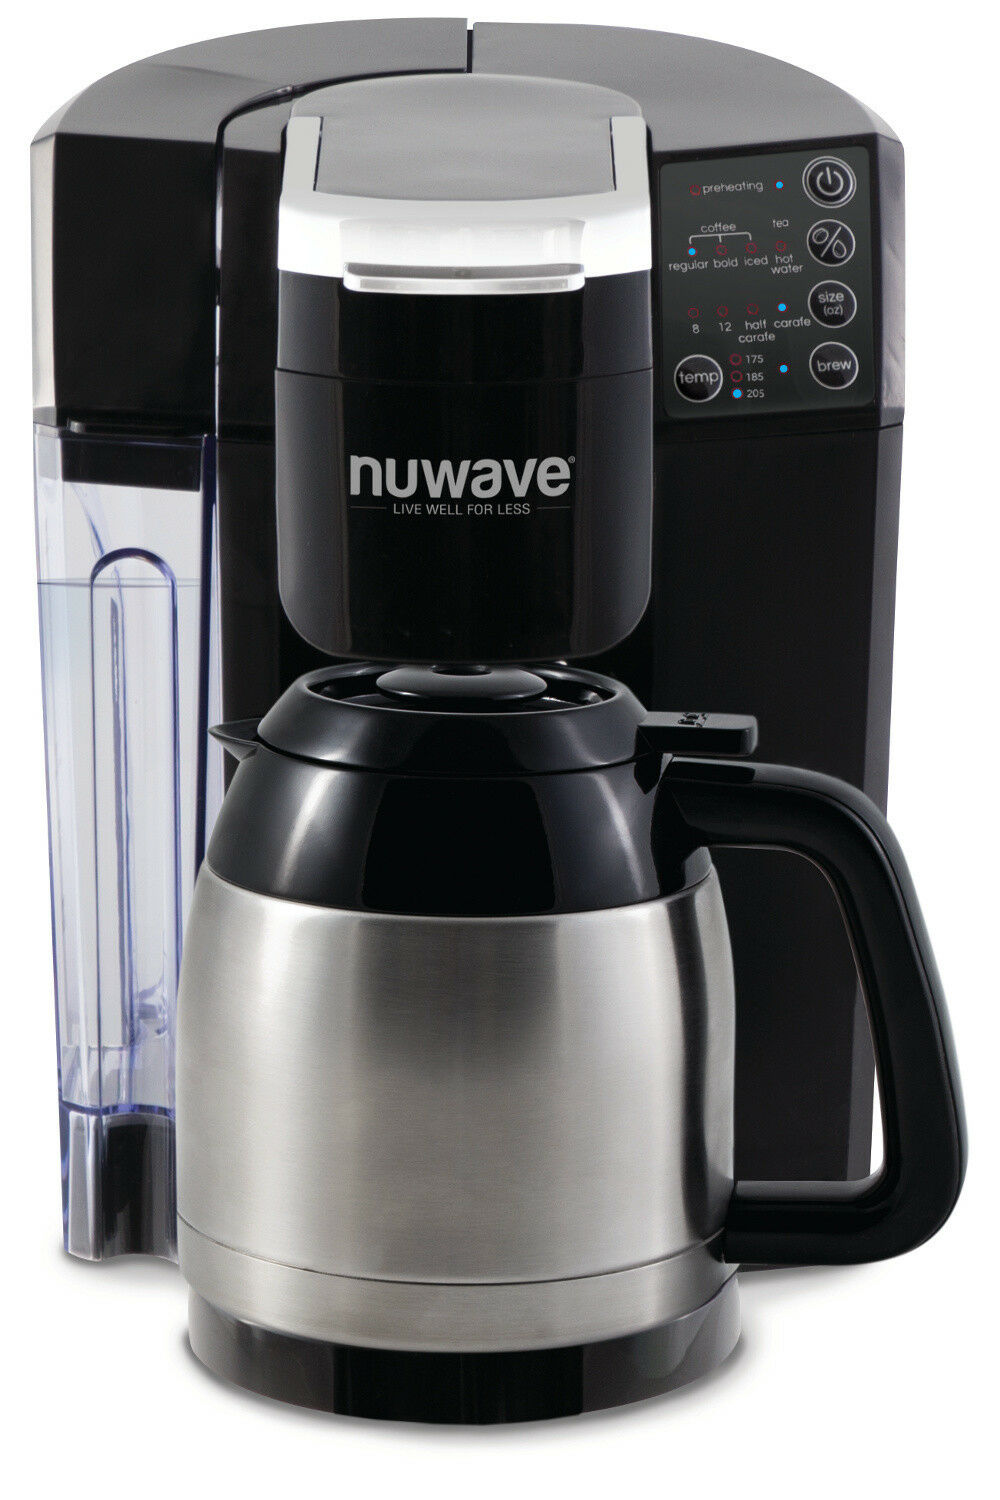 BruHub 3 in 1 Coffee Maker with Stainless Steel Carafe.